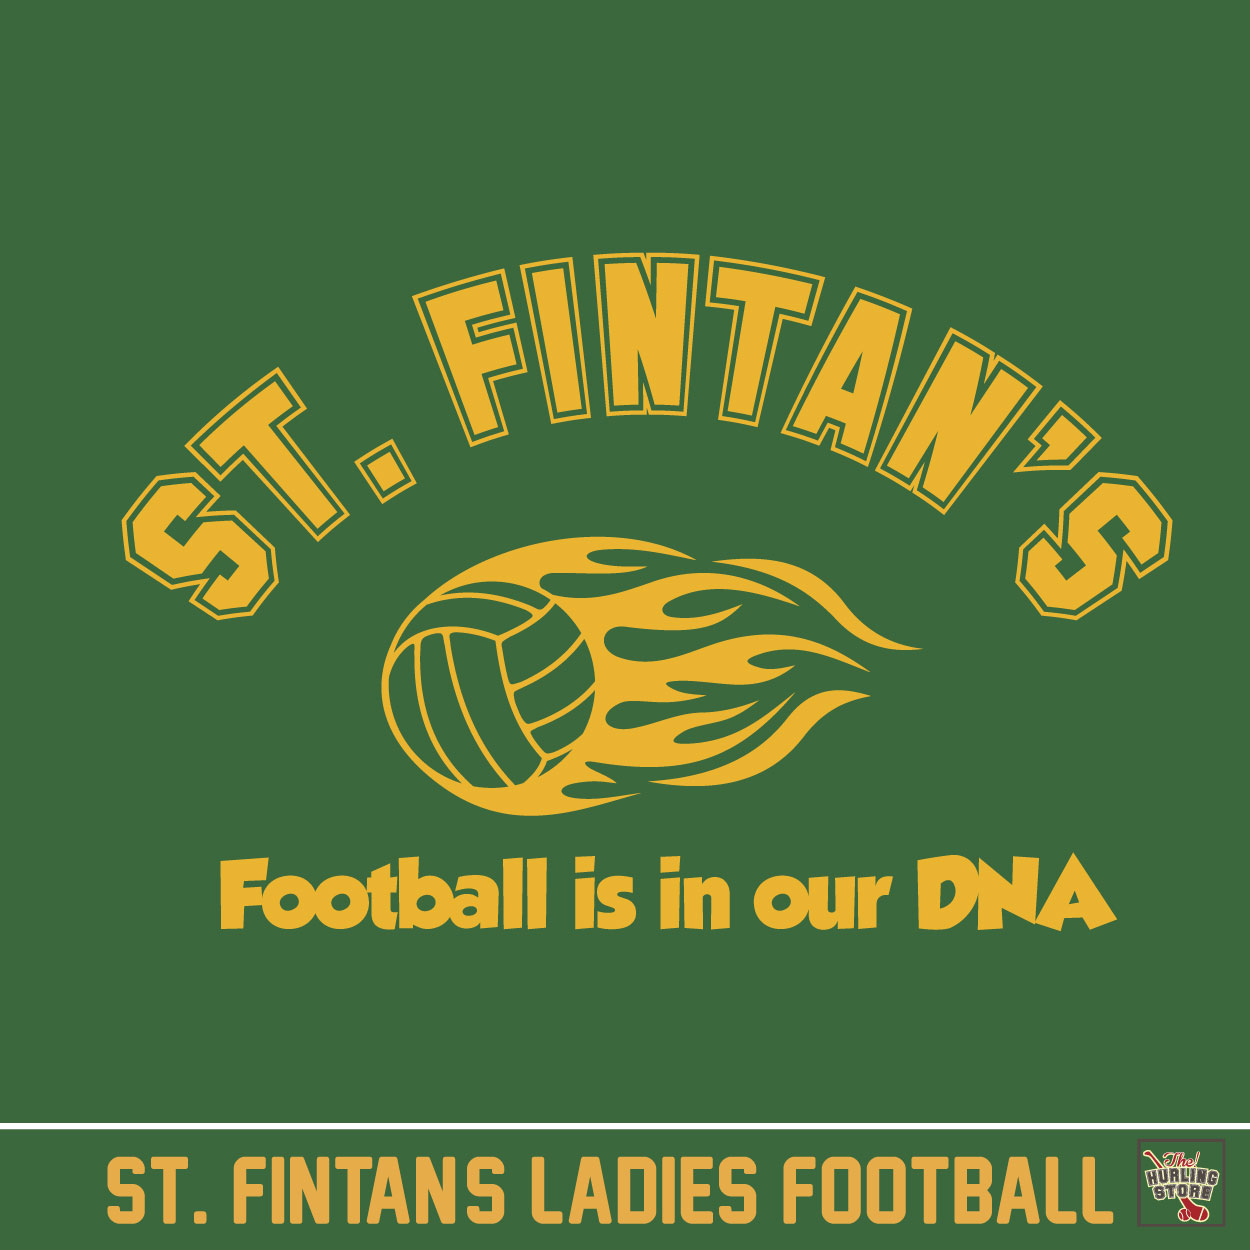 St. Fintans Ladies Football